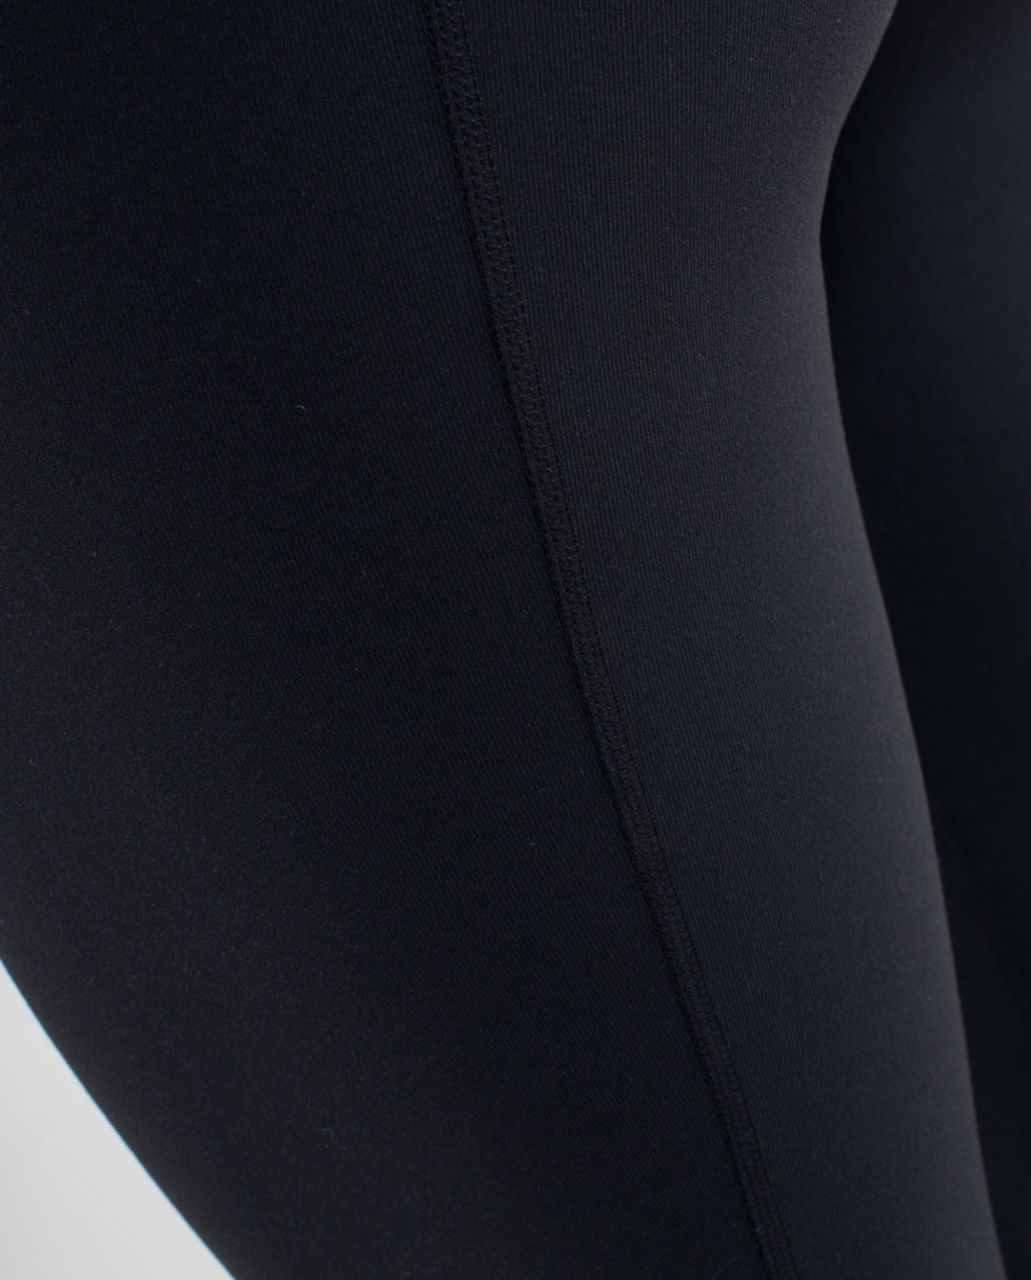 Lululemon Groove Pant (Tall) - Black /  Elevation Space Dye